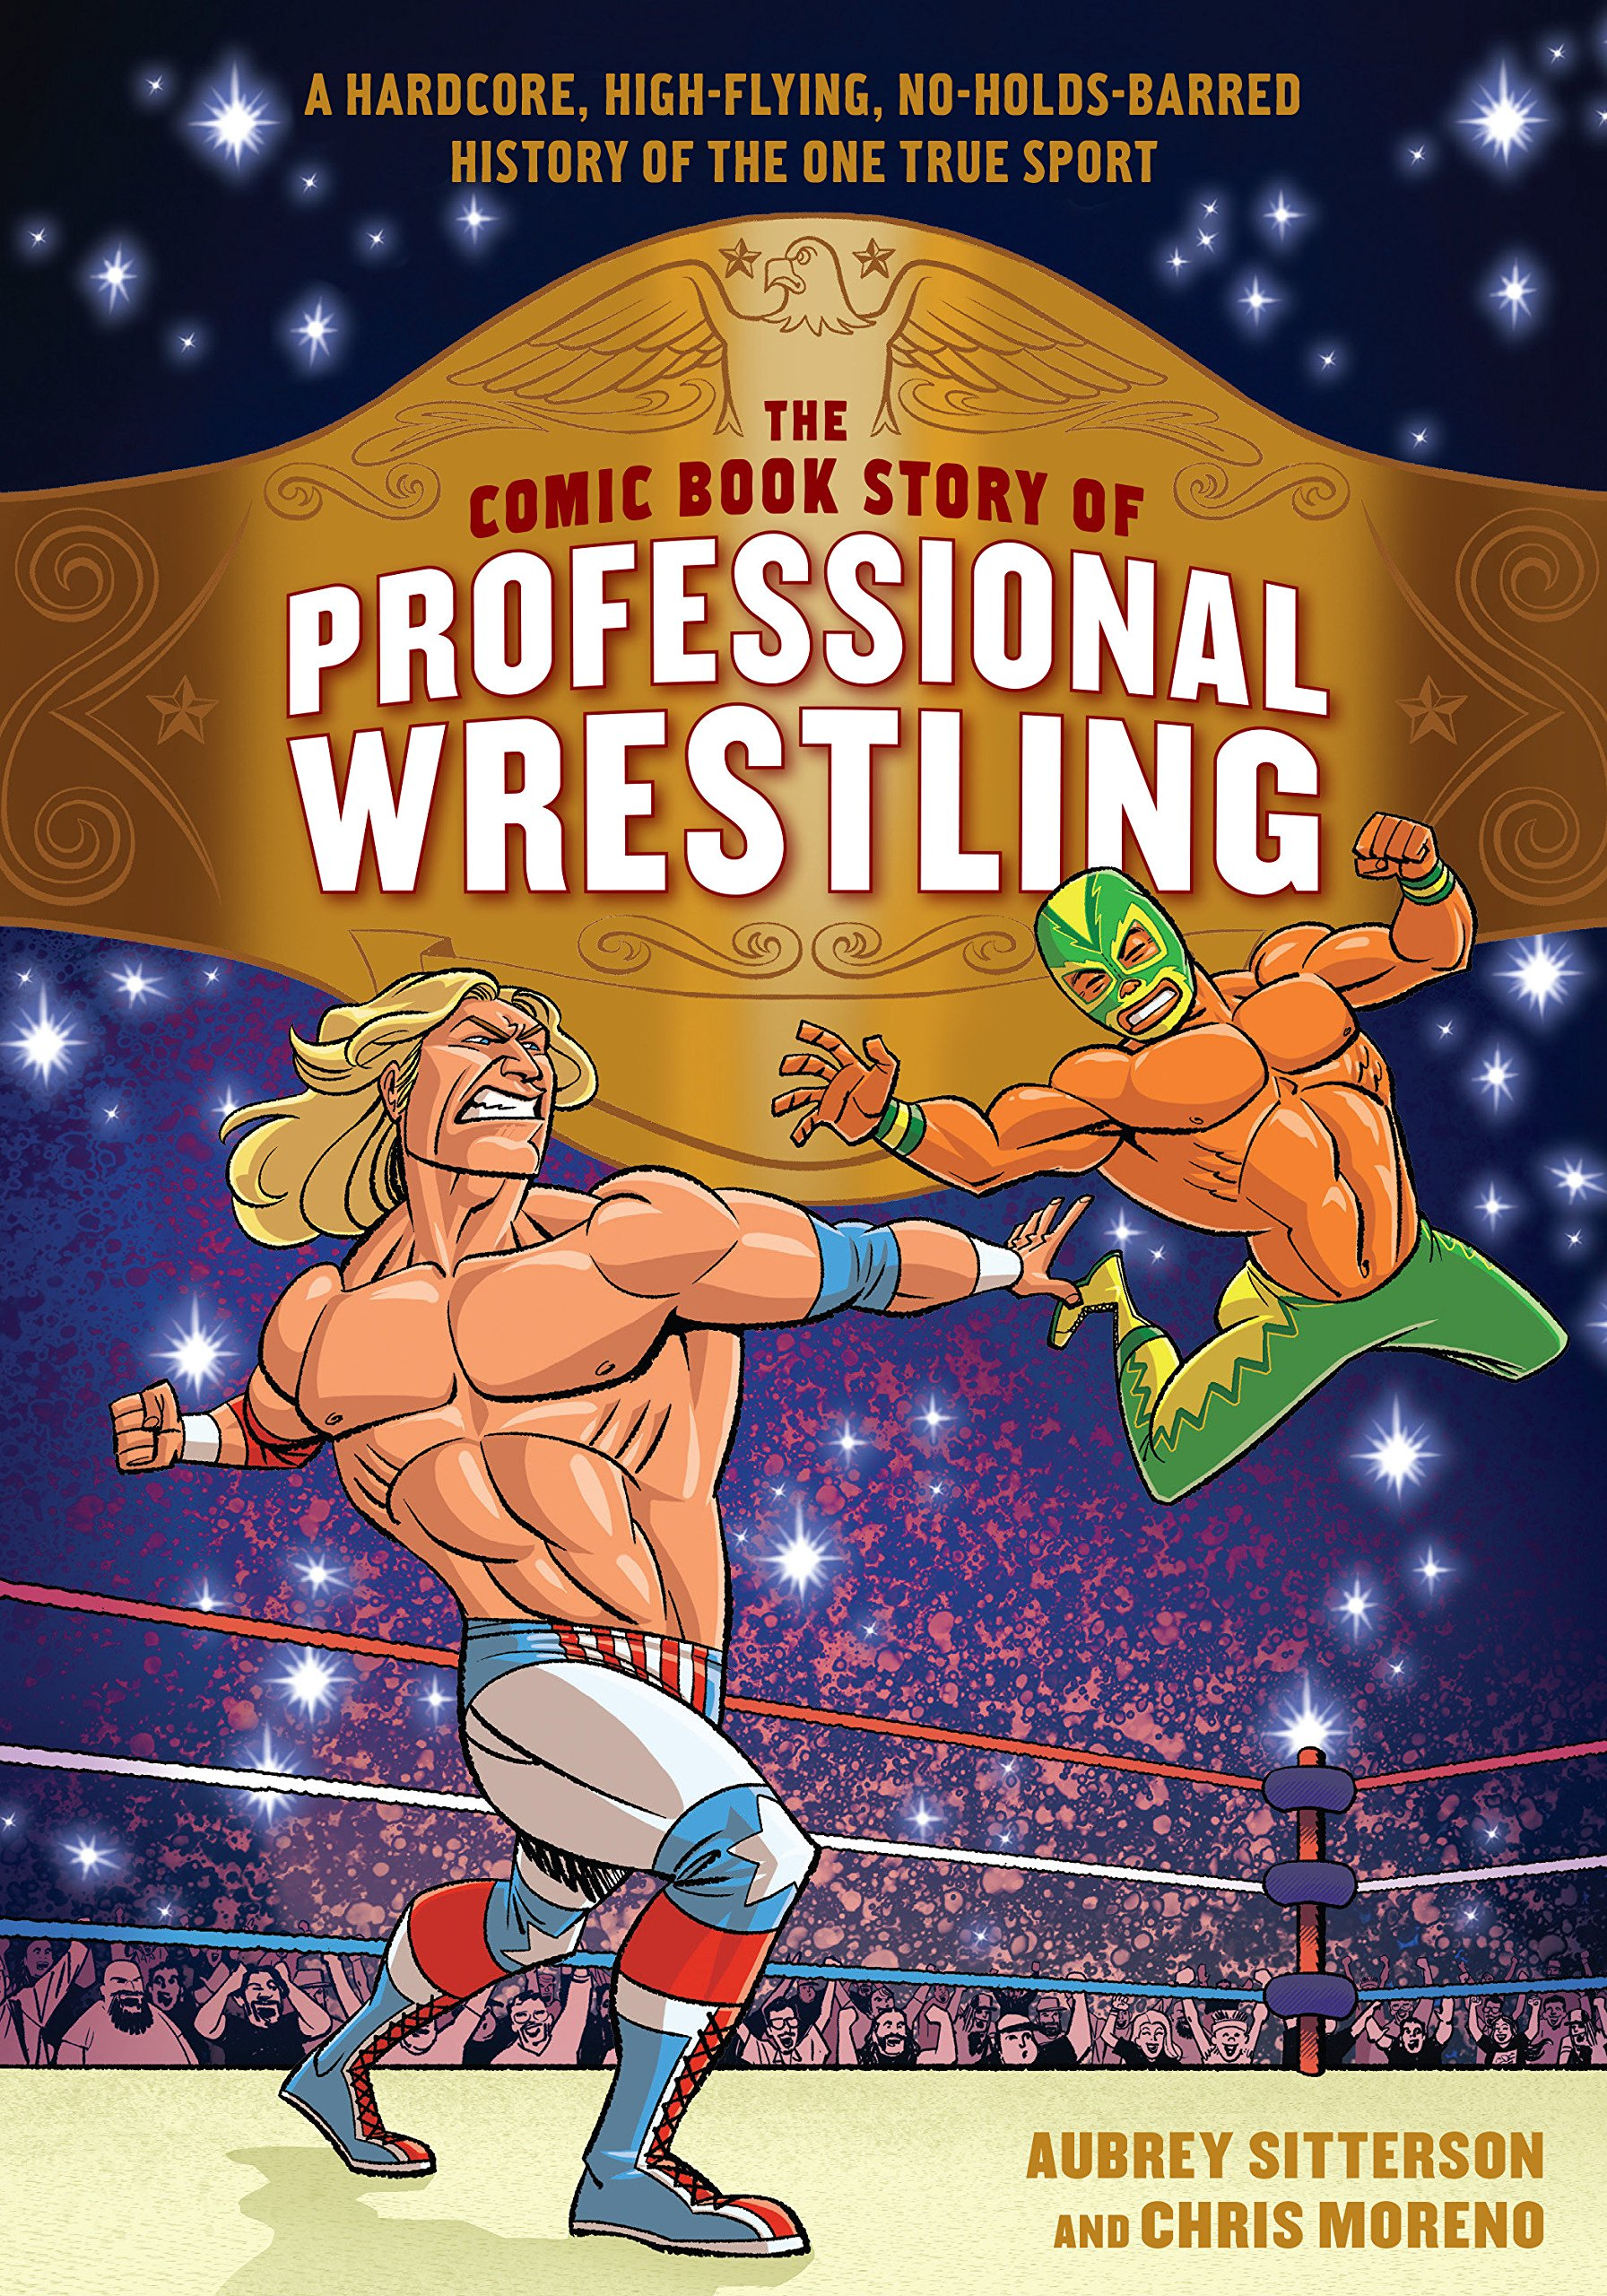 Download The Comic Book Story Of Professional Wrestling: A Hardcore, High-flying, No-holds-barred History Of The One True Sport 